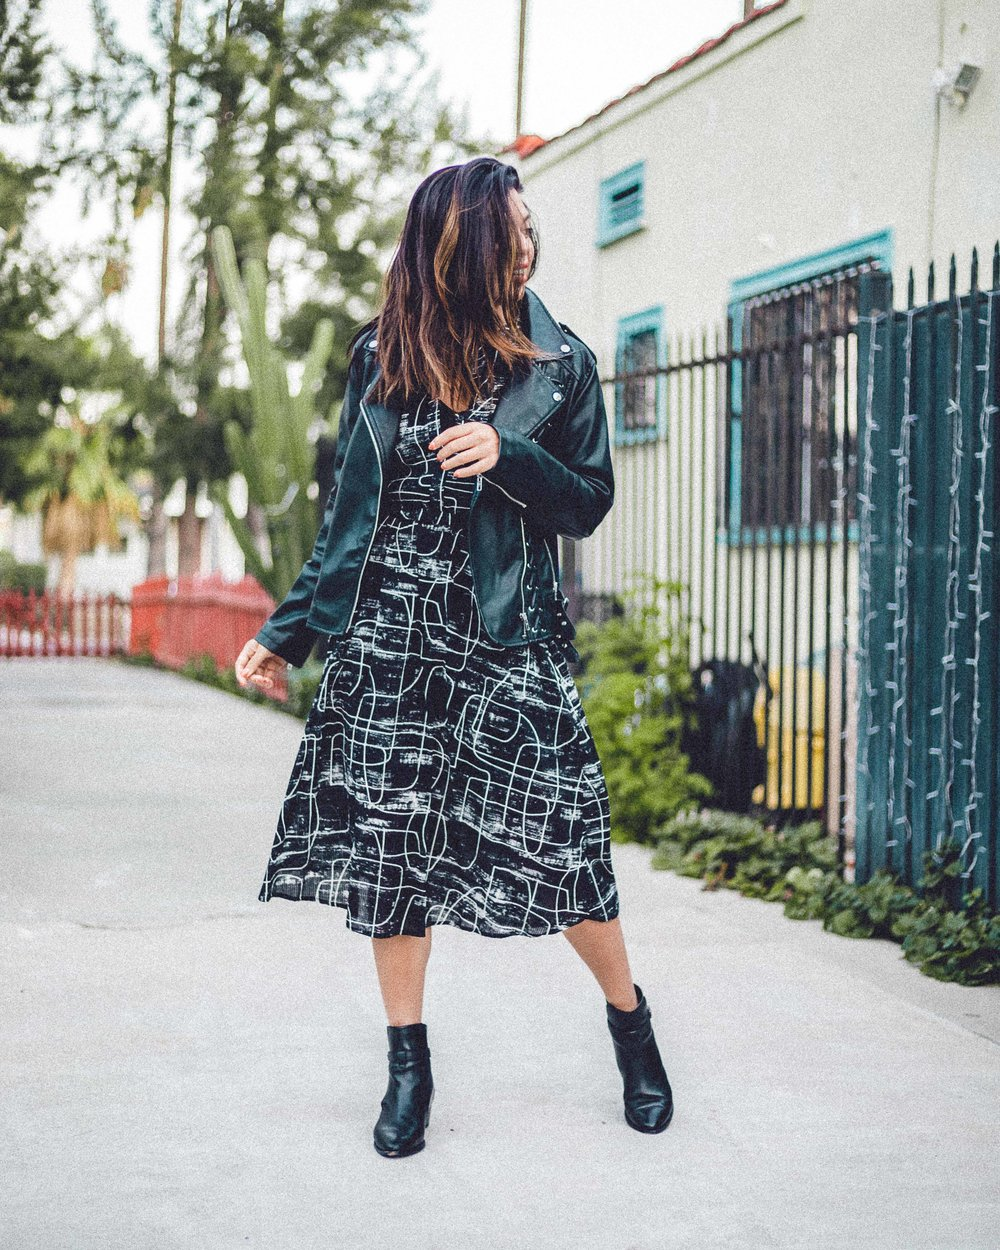 Rachel Off Duty: 4 Ankle Boots for Winter - Pointed Toe Ankle Boots